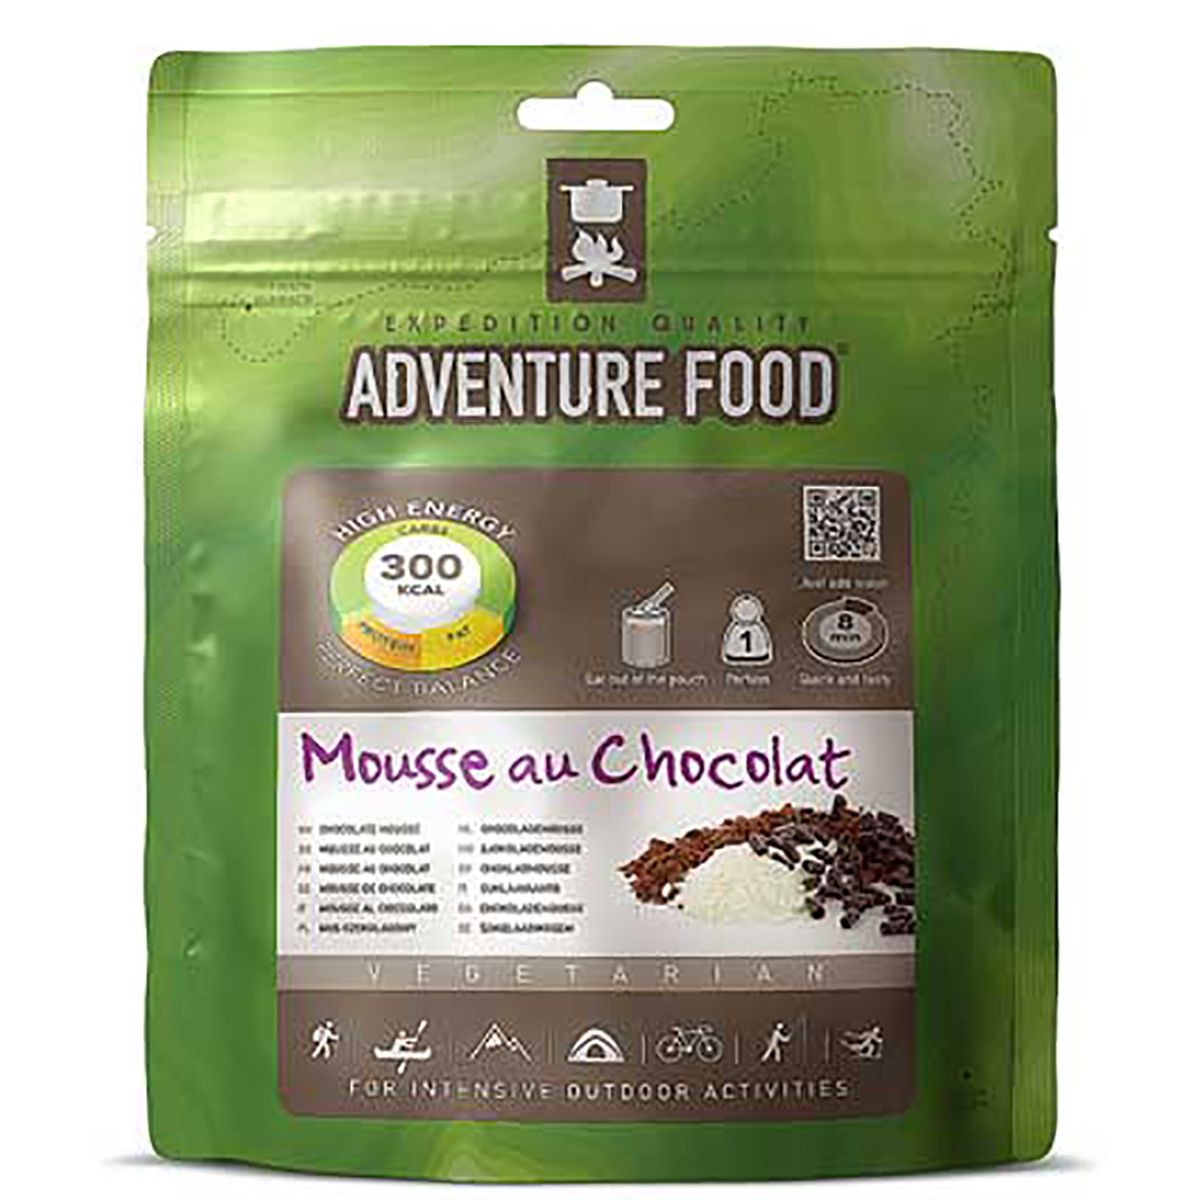 Image of Adventure Food Mousse au Chocolate